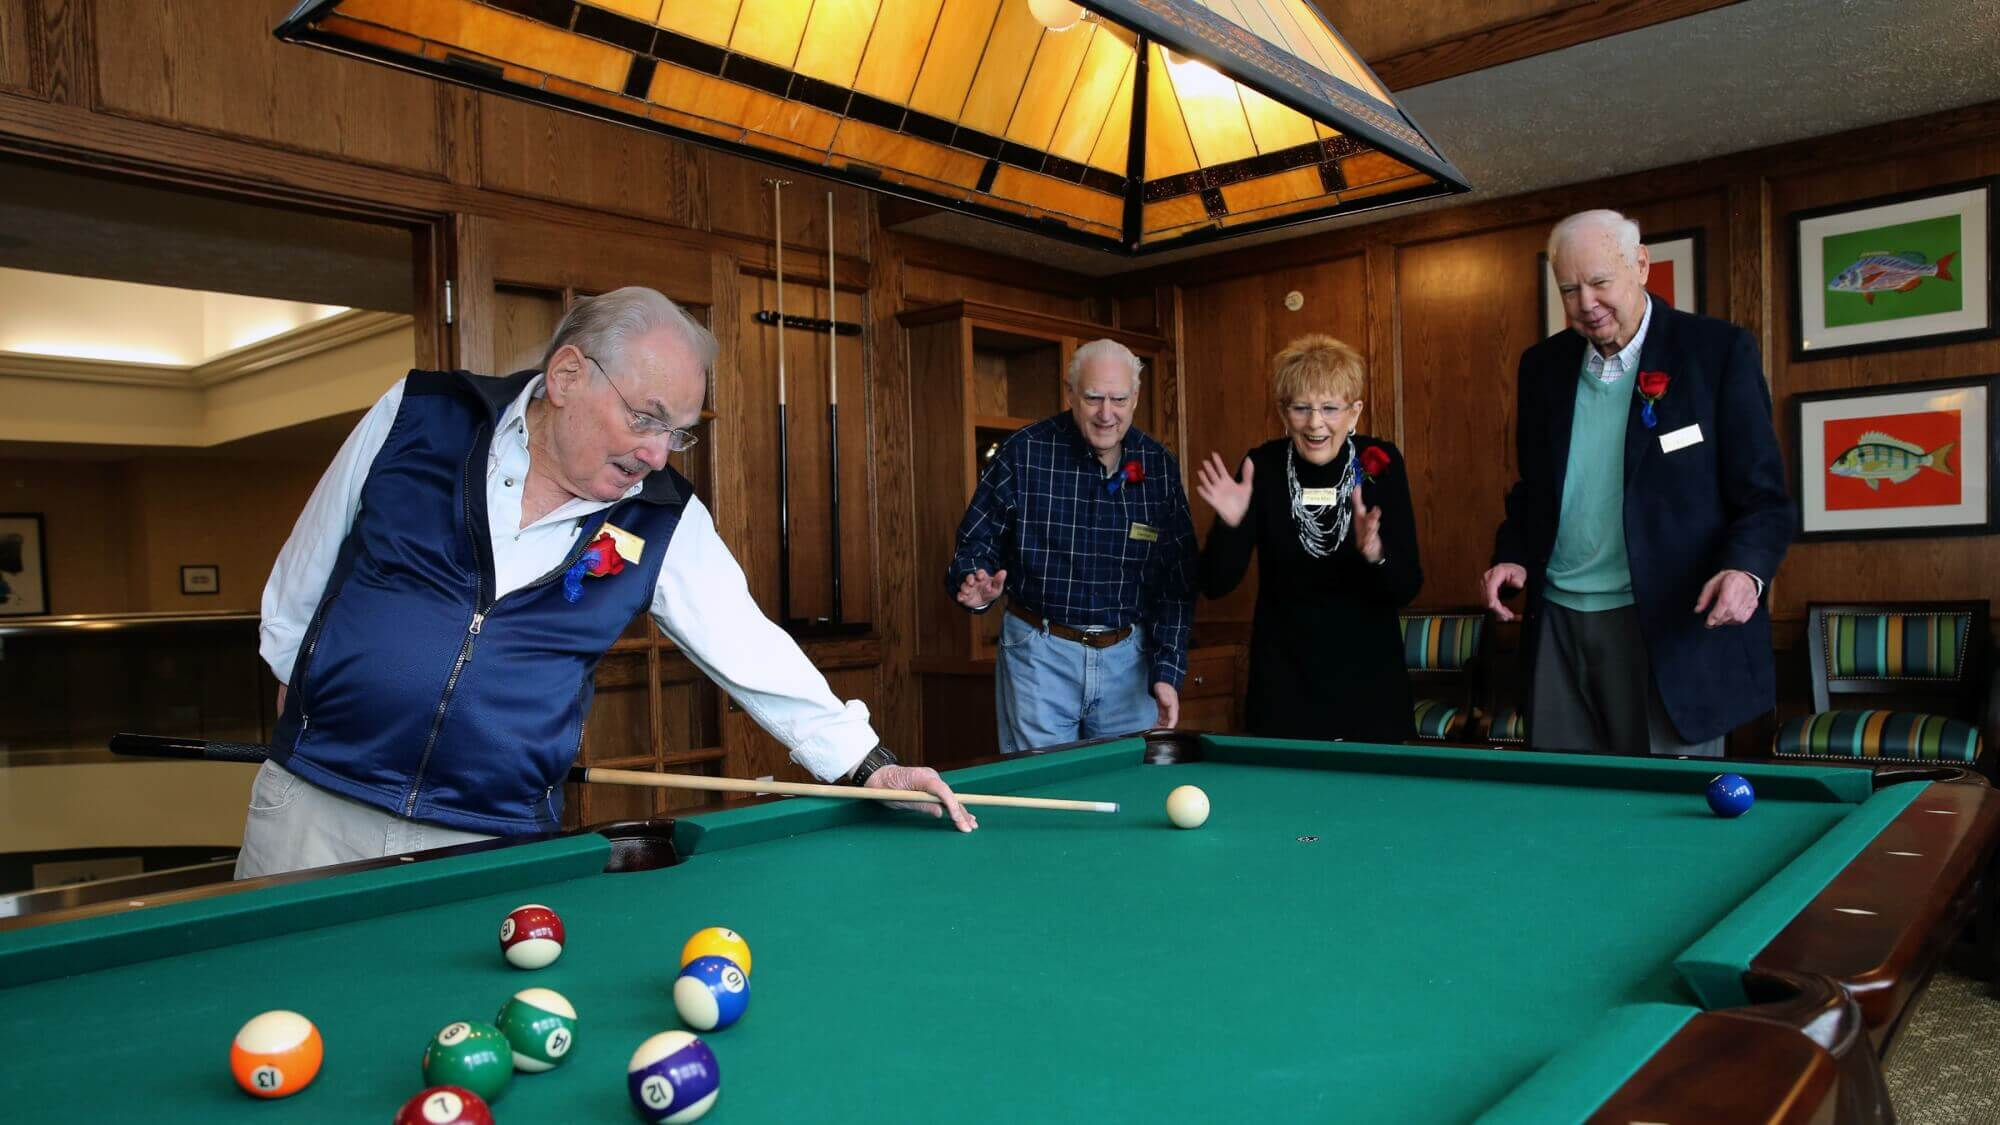 Residents cheering on a trick billiards shot in the pool hall at Lake Forest Village.